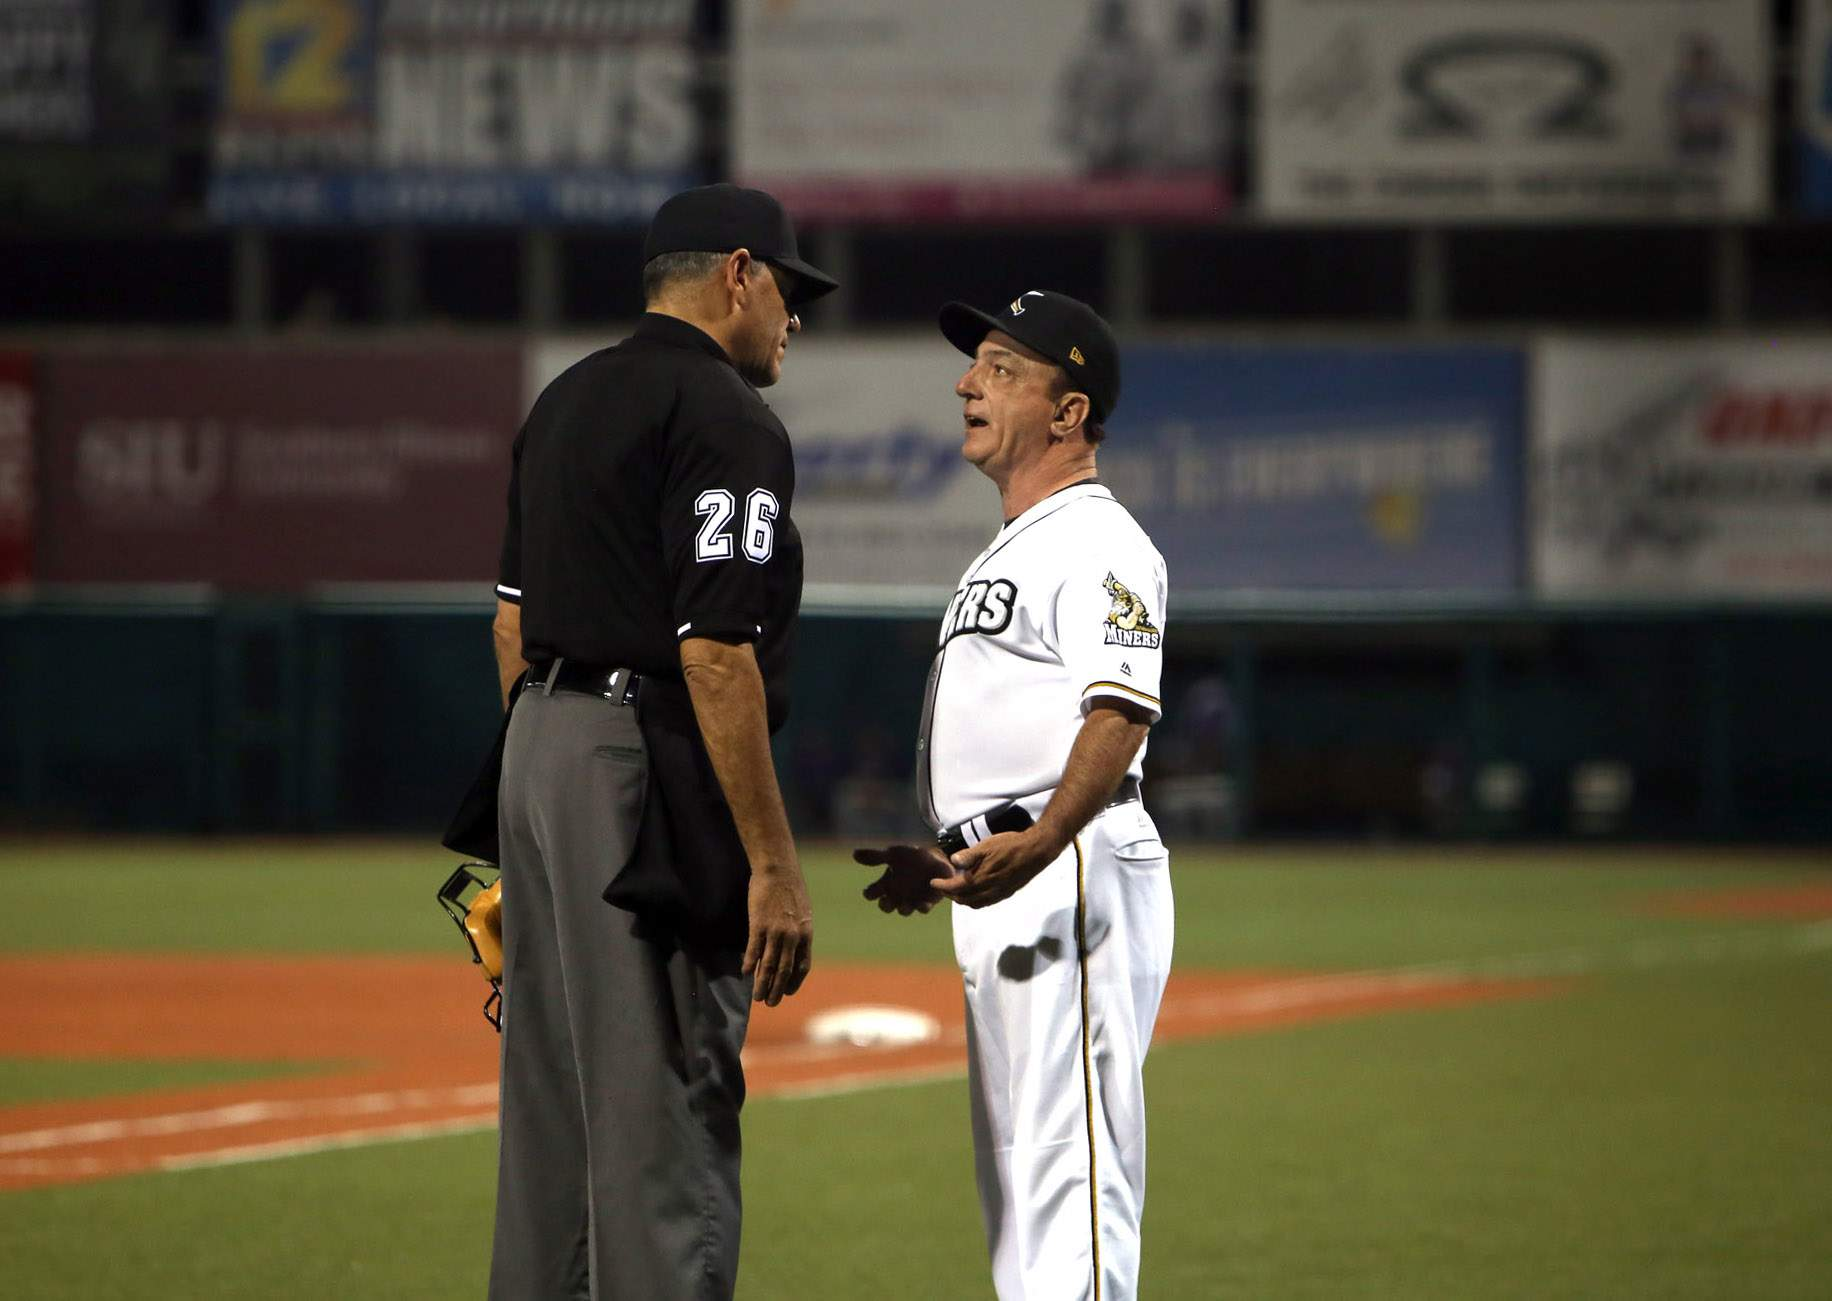 Miners manager Mike Pinto has a discussion with umpire Steve Bartelstein during the season opener.